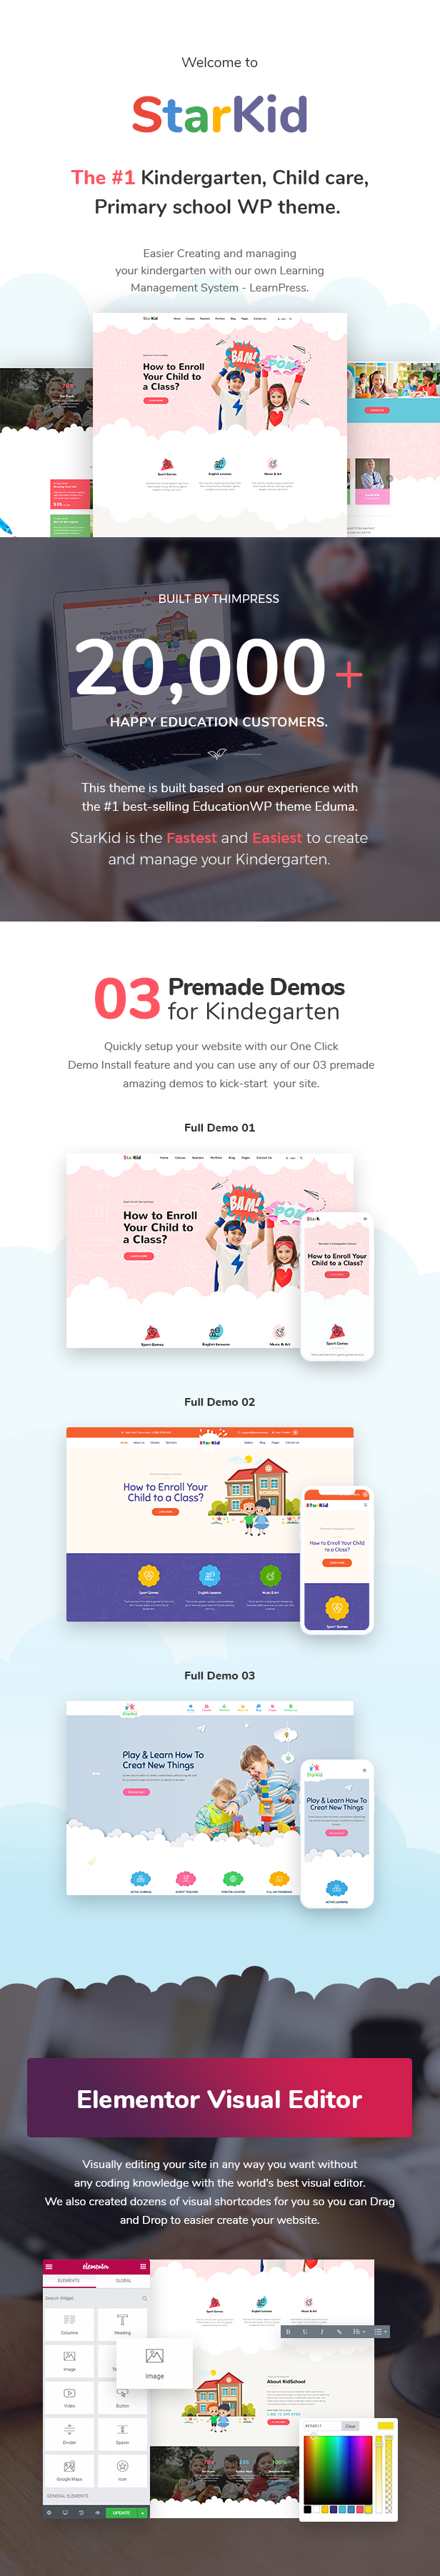 StarKid | Kindergarten WordPress Theme - 1